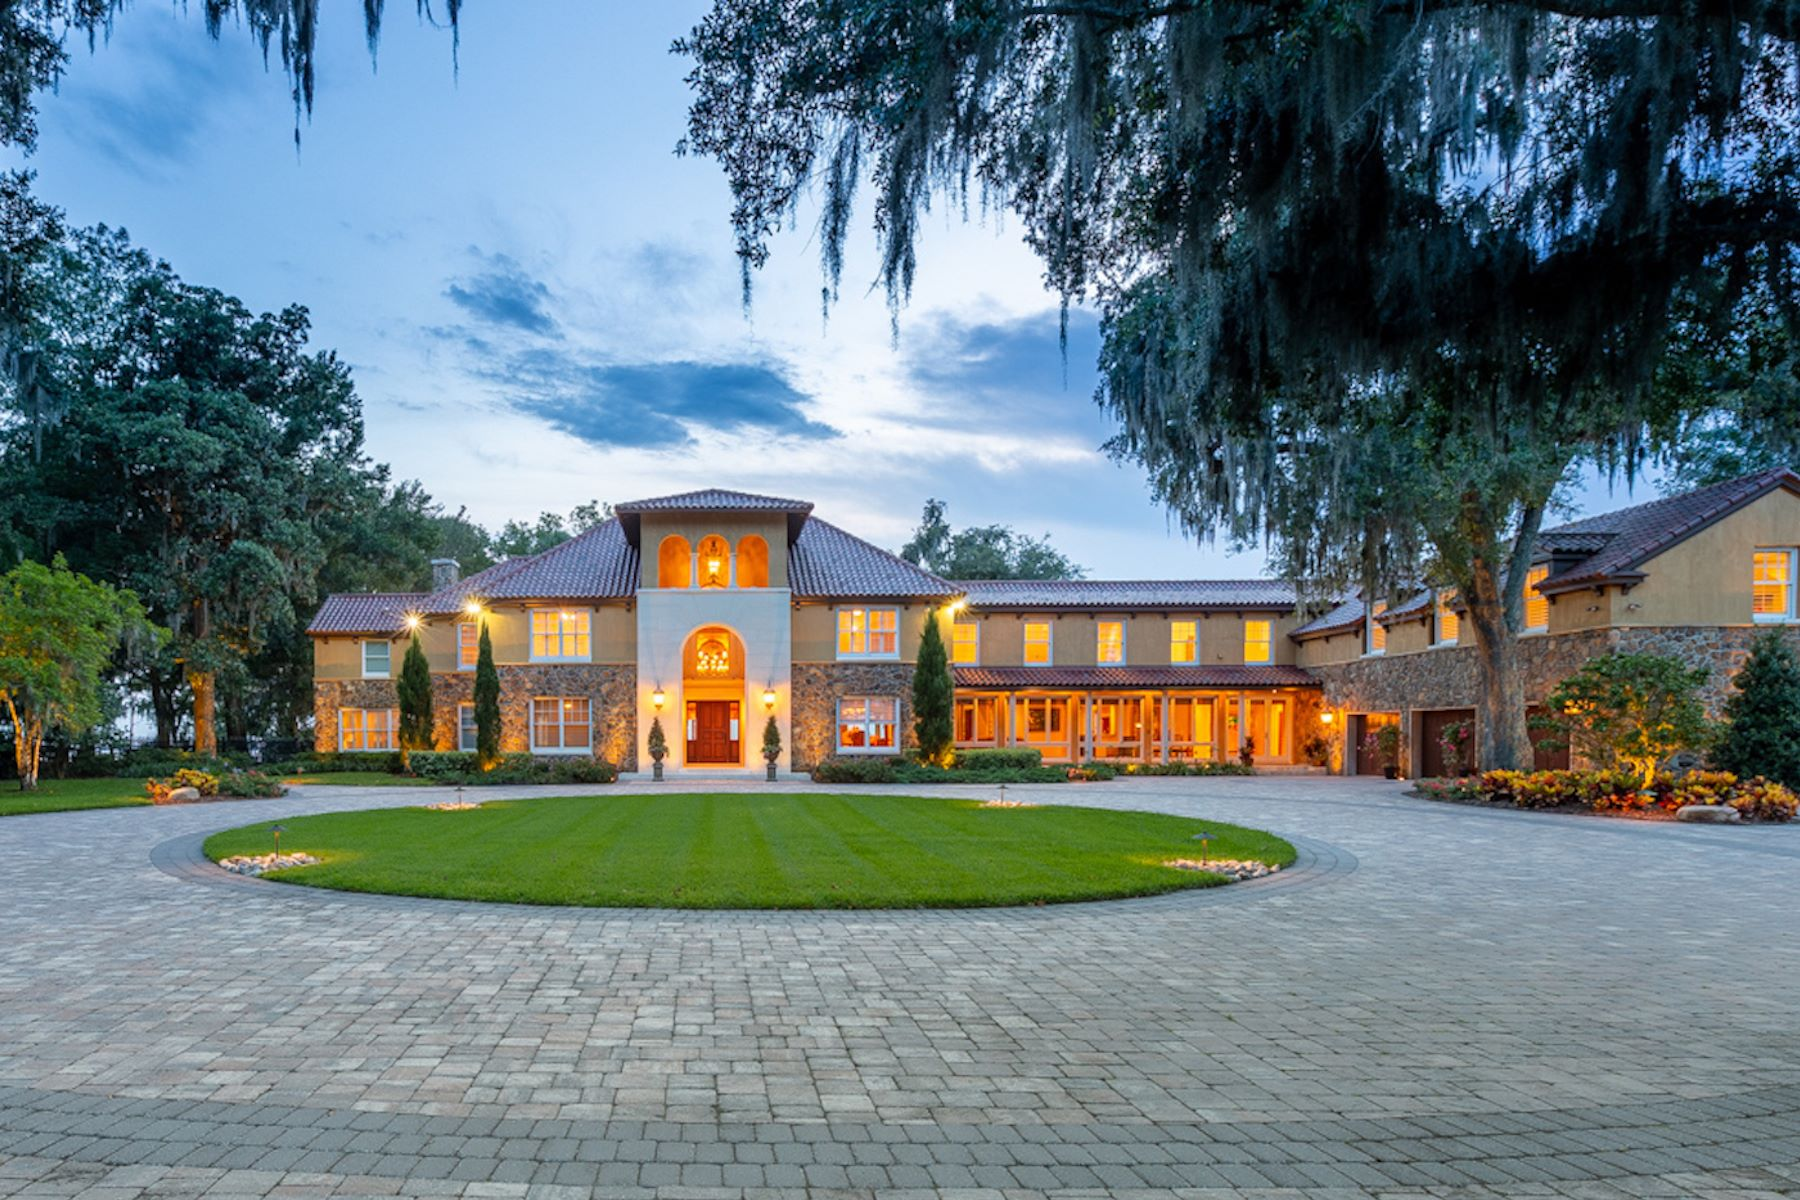 Single Family Homes for Active at Luxury Mediterranean Estate 8652 Cathedral Oaks Place West Jacksonville, Florida 32217 United States